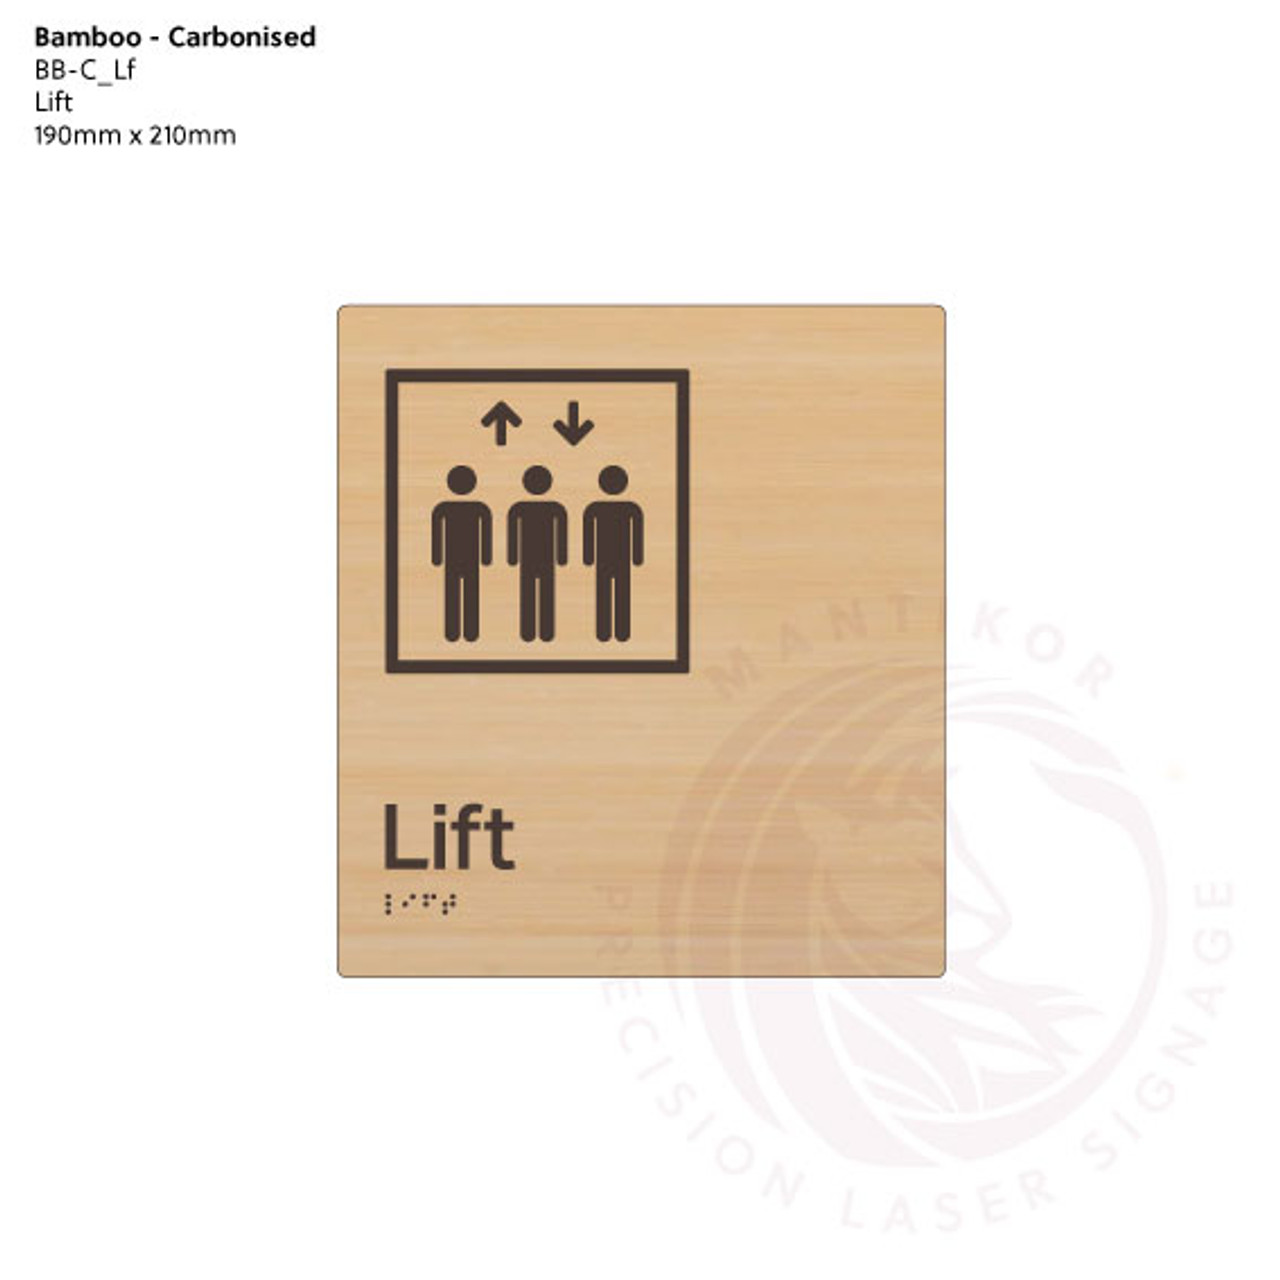 Carbonised Bamboo Tactile Braille Signs - Lift